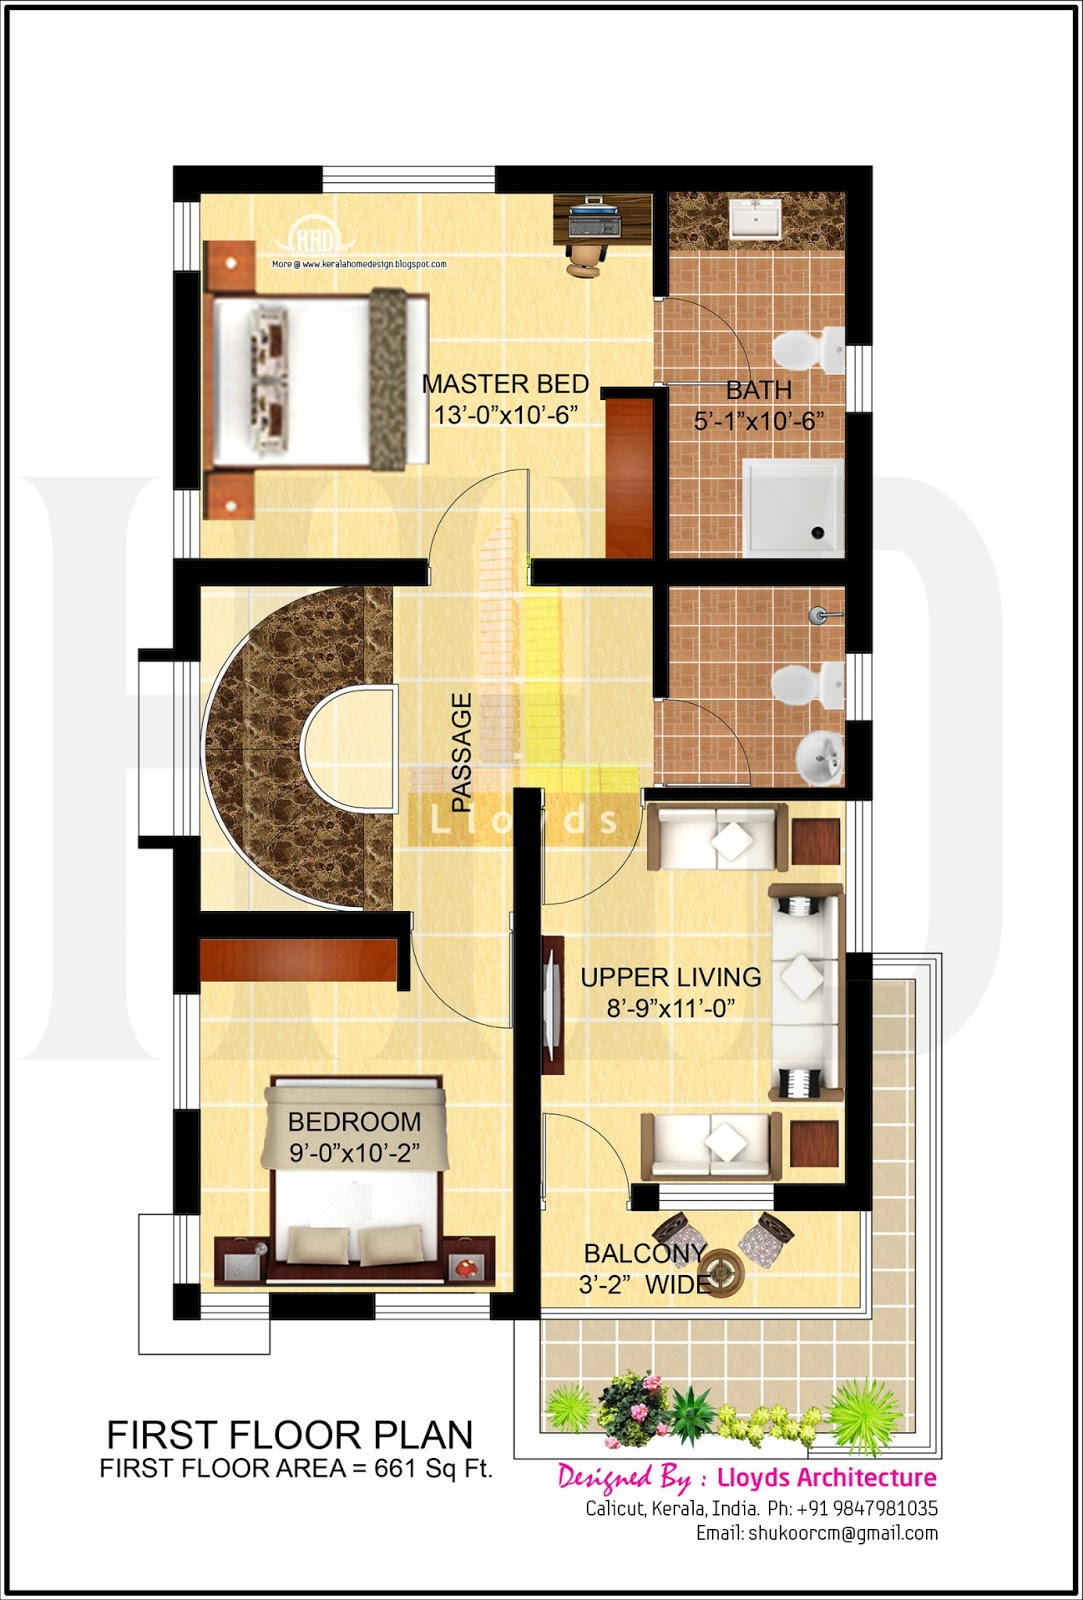 7 11 Store Floor Plan also Earth Sheltered Homes Floor Plans And Prices also Open Floor Plans Search House further New Orleans Style Home Design Trend And as well Earthship Homes House Plans. on earthship floor plans 4 bedroom